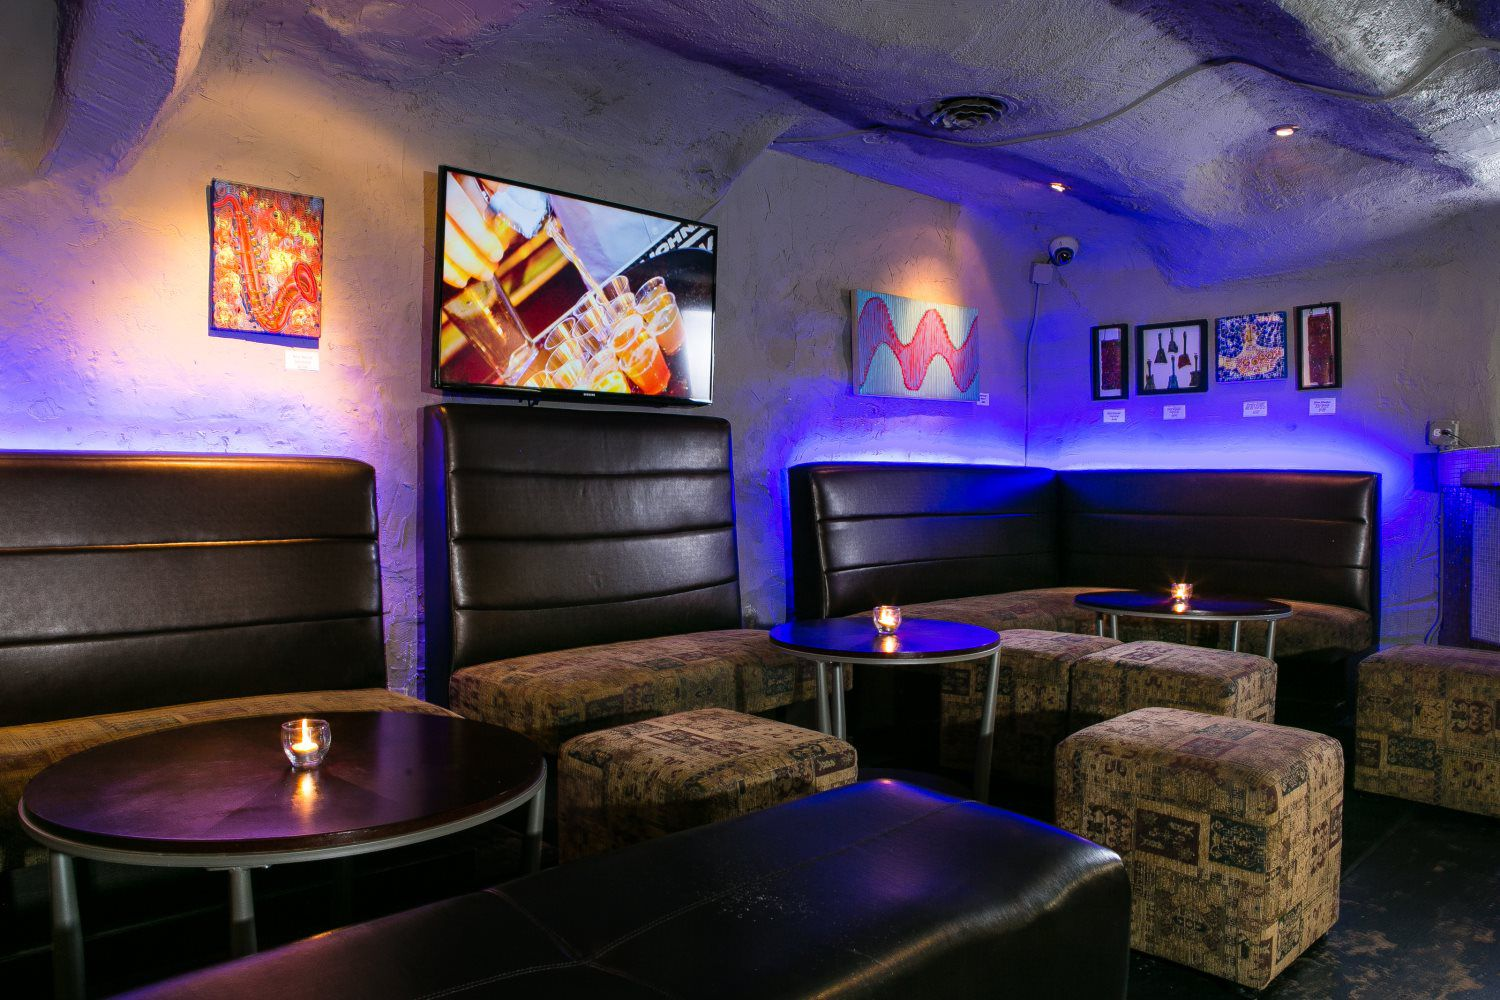 Home - The Drop Lounge 1909 N Lincoln Ave, Chicago | 312-574-0898